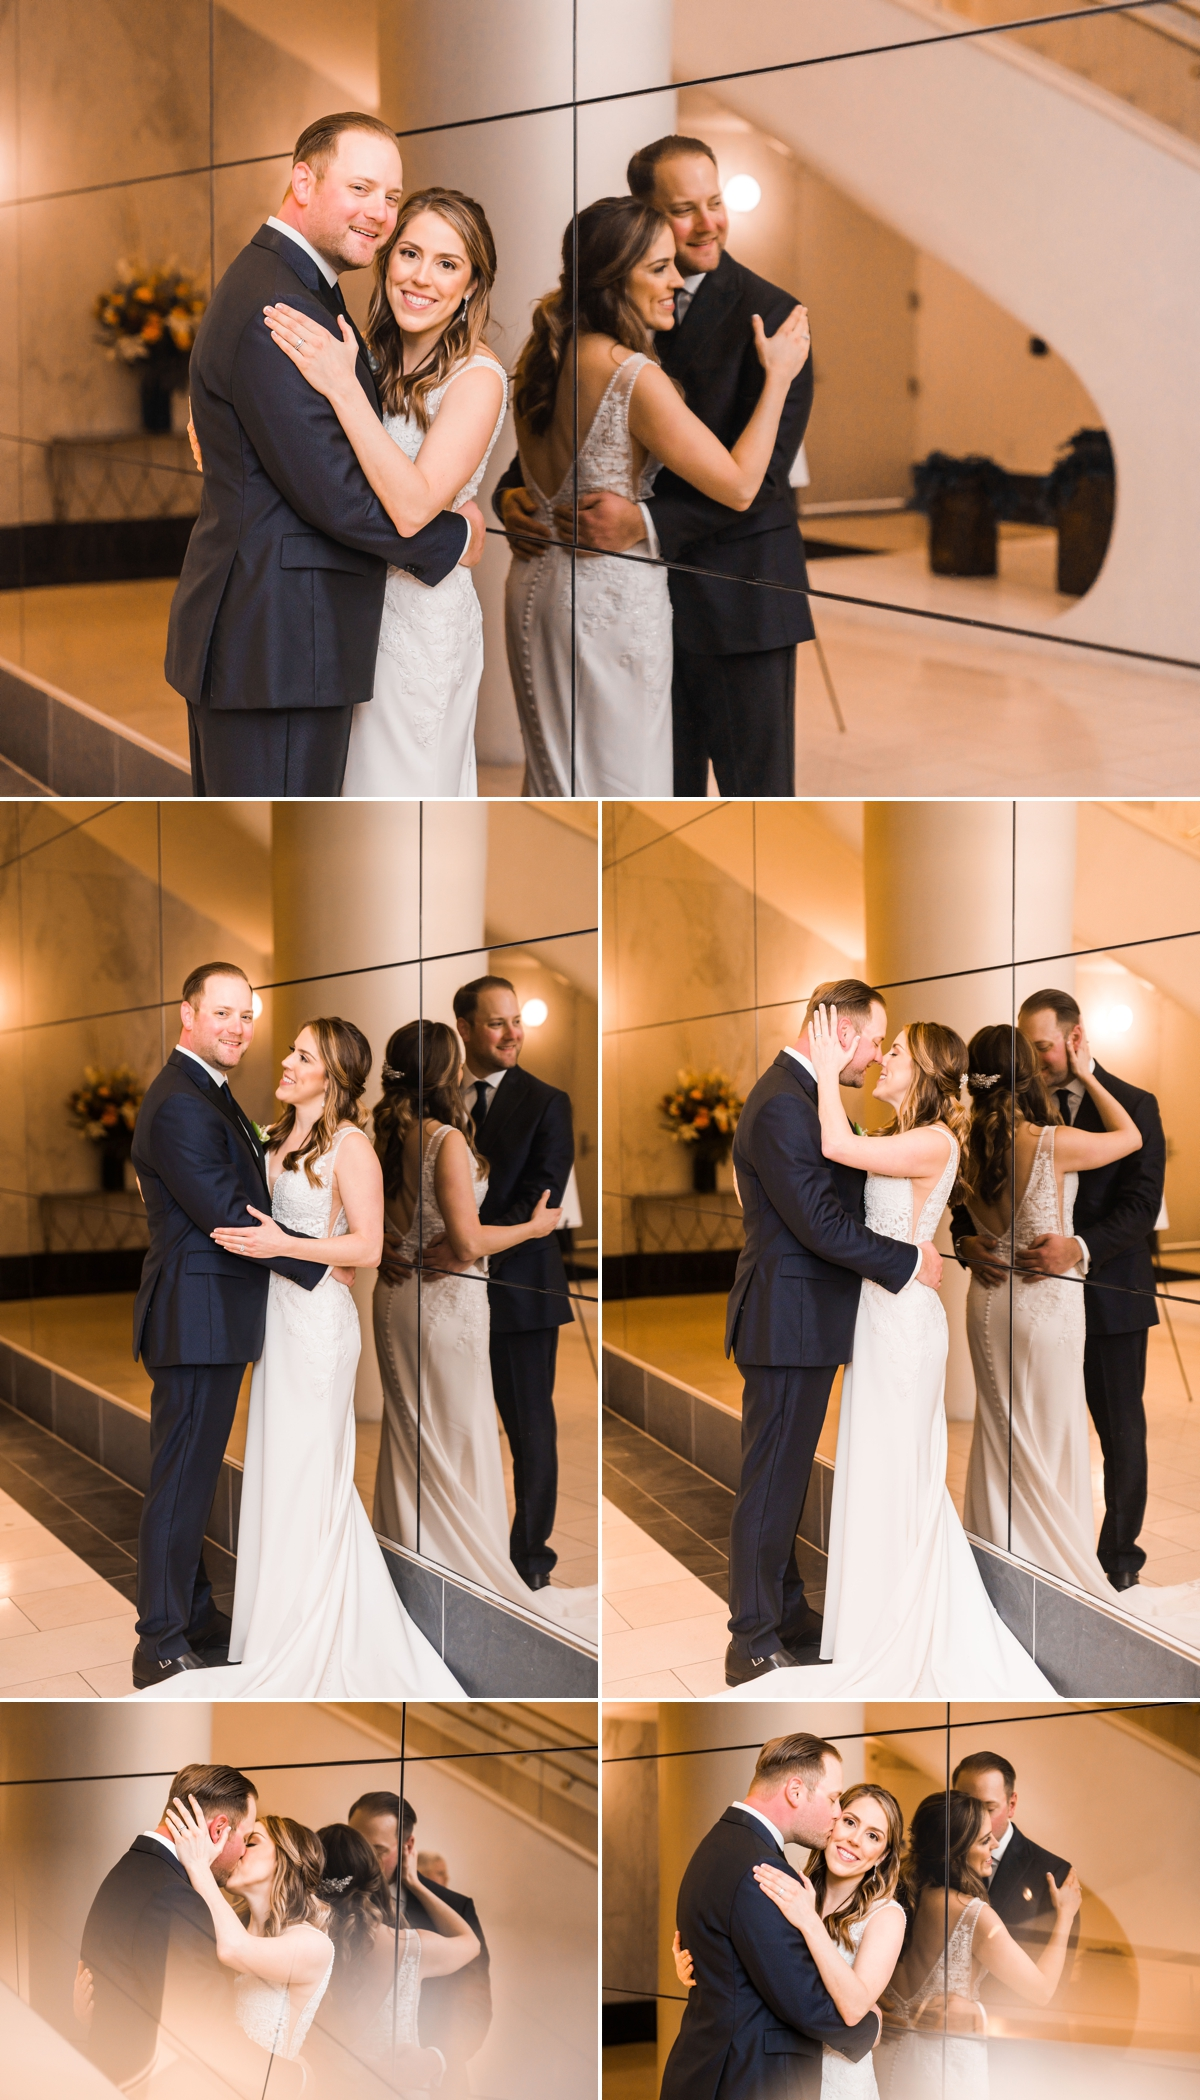 Chic Houston Hotel Wedding Portraits with the Bride and Groom using a mirrored wall